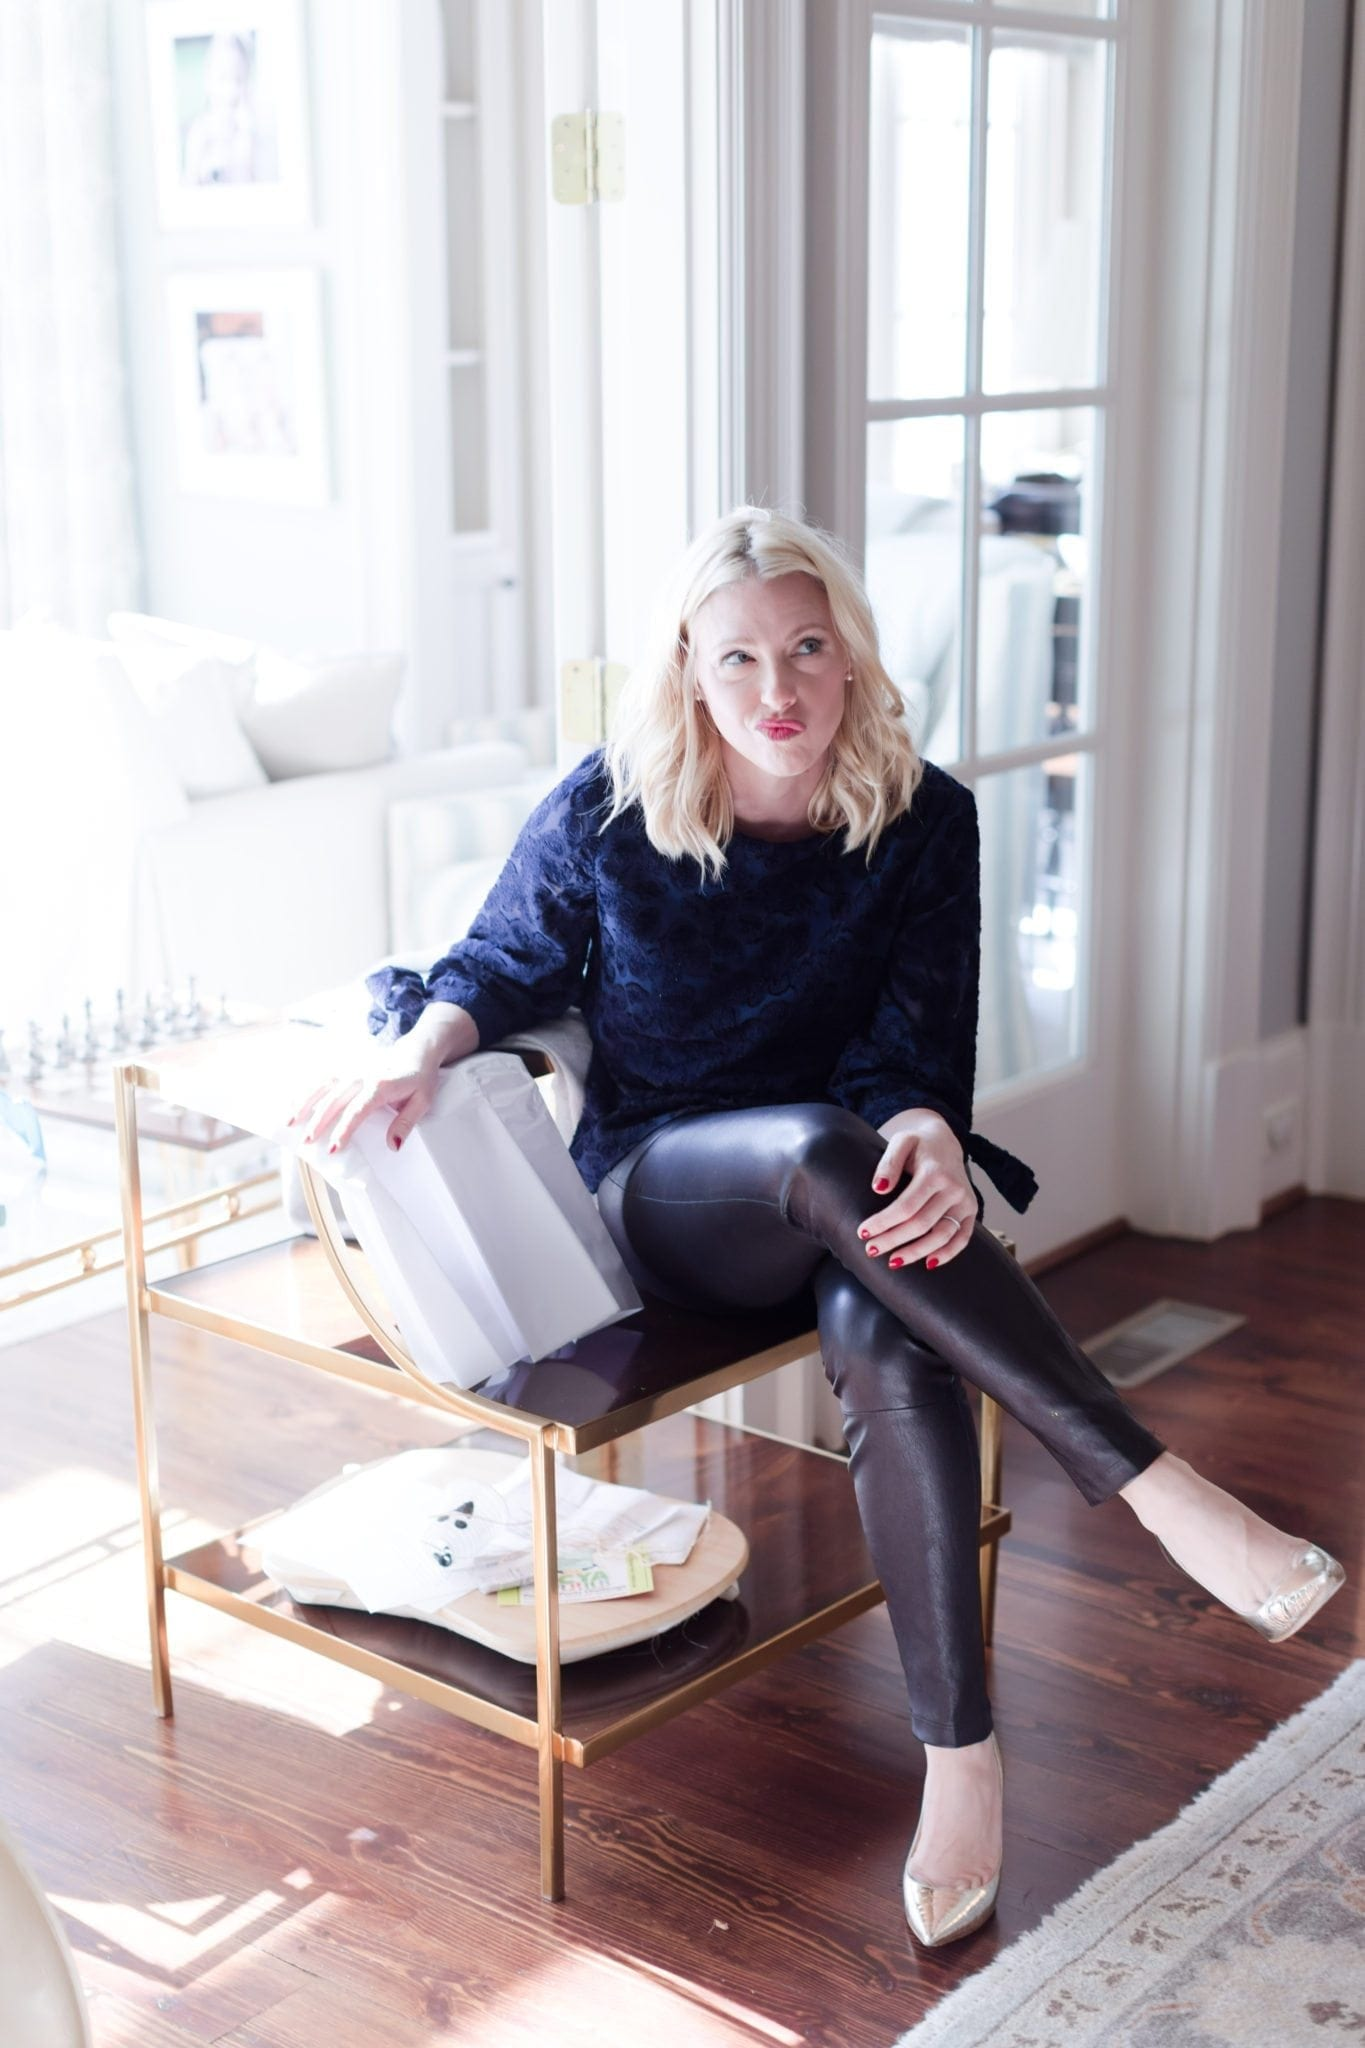 Do you find lifestyle bloggers funny? Me too. Me in leather pants, heals.